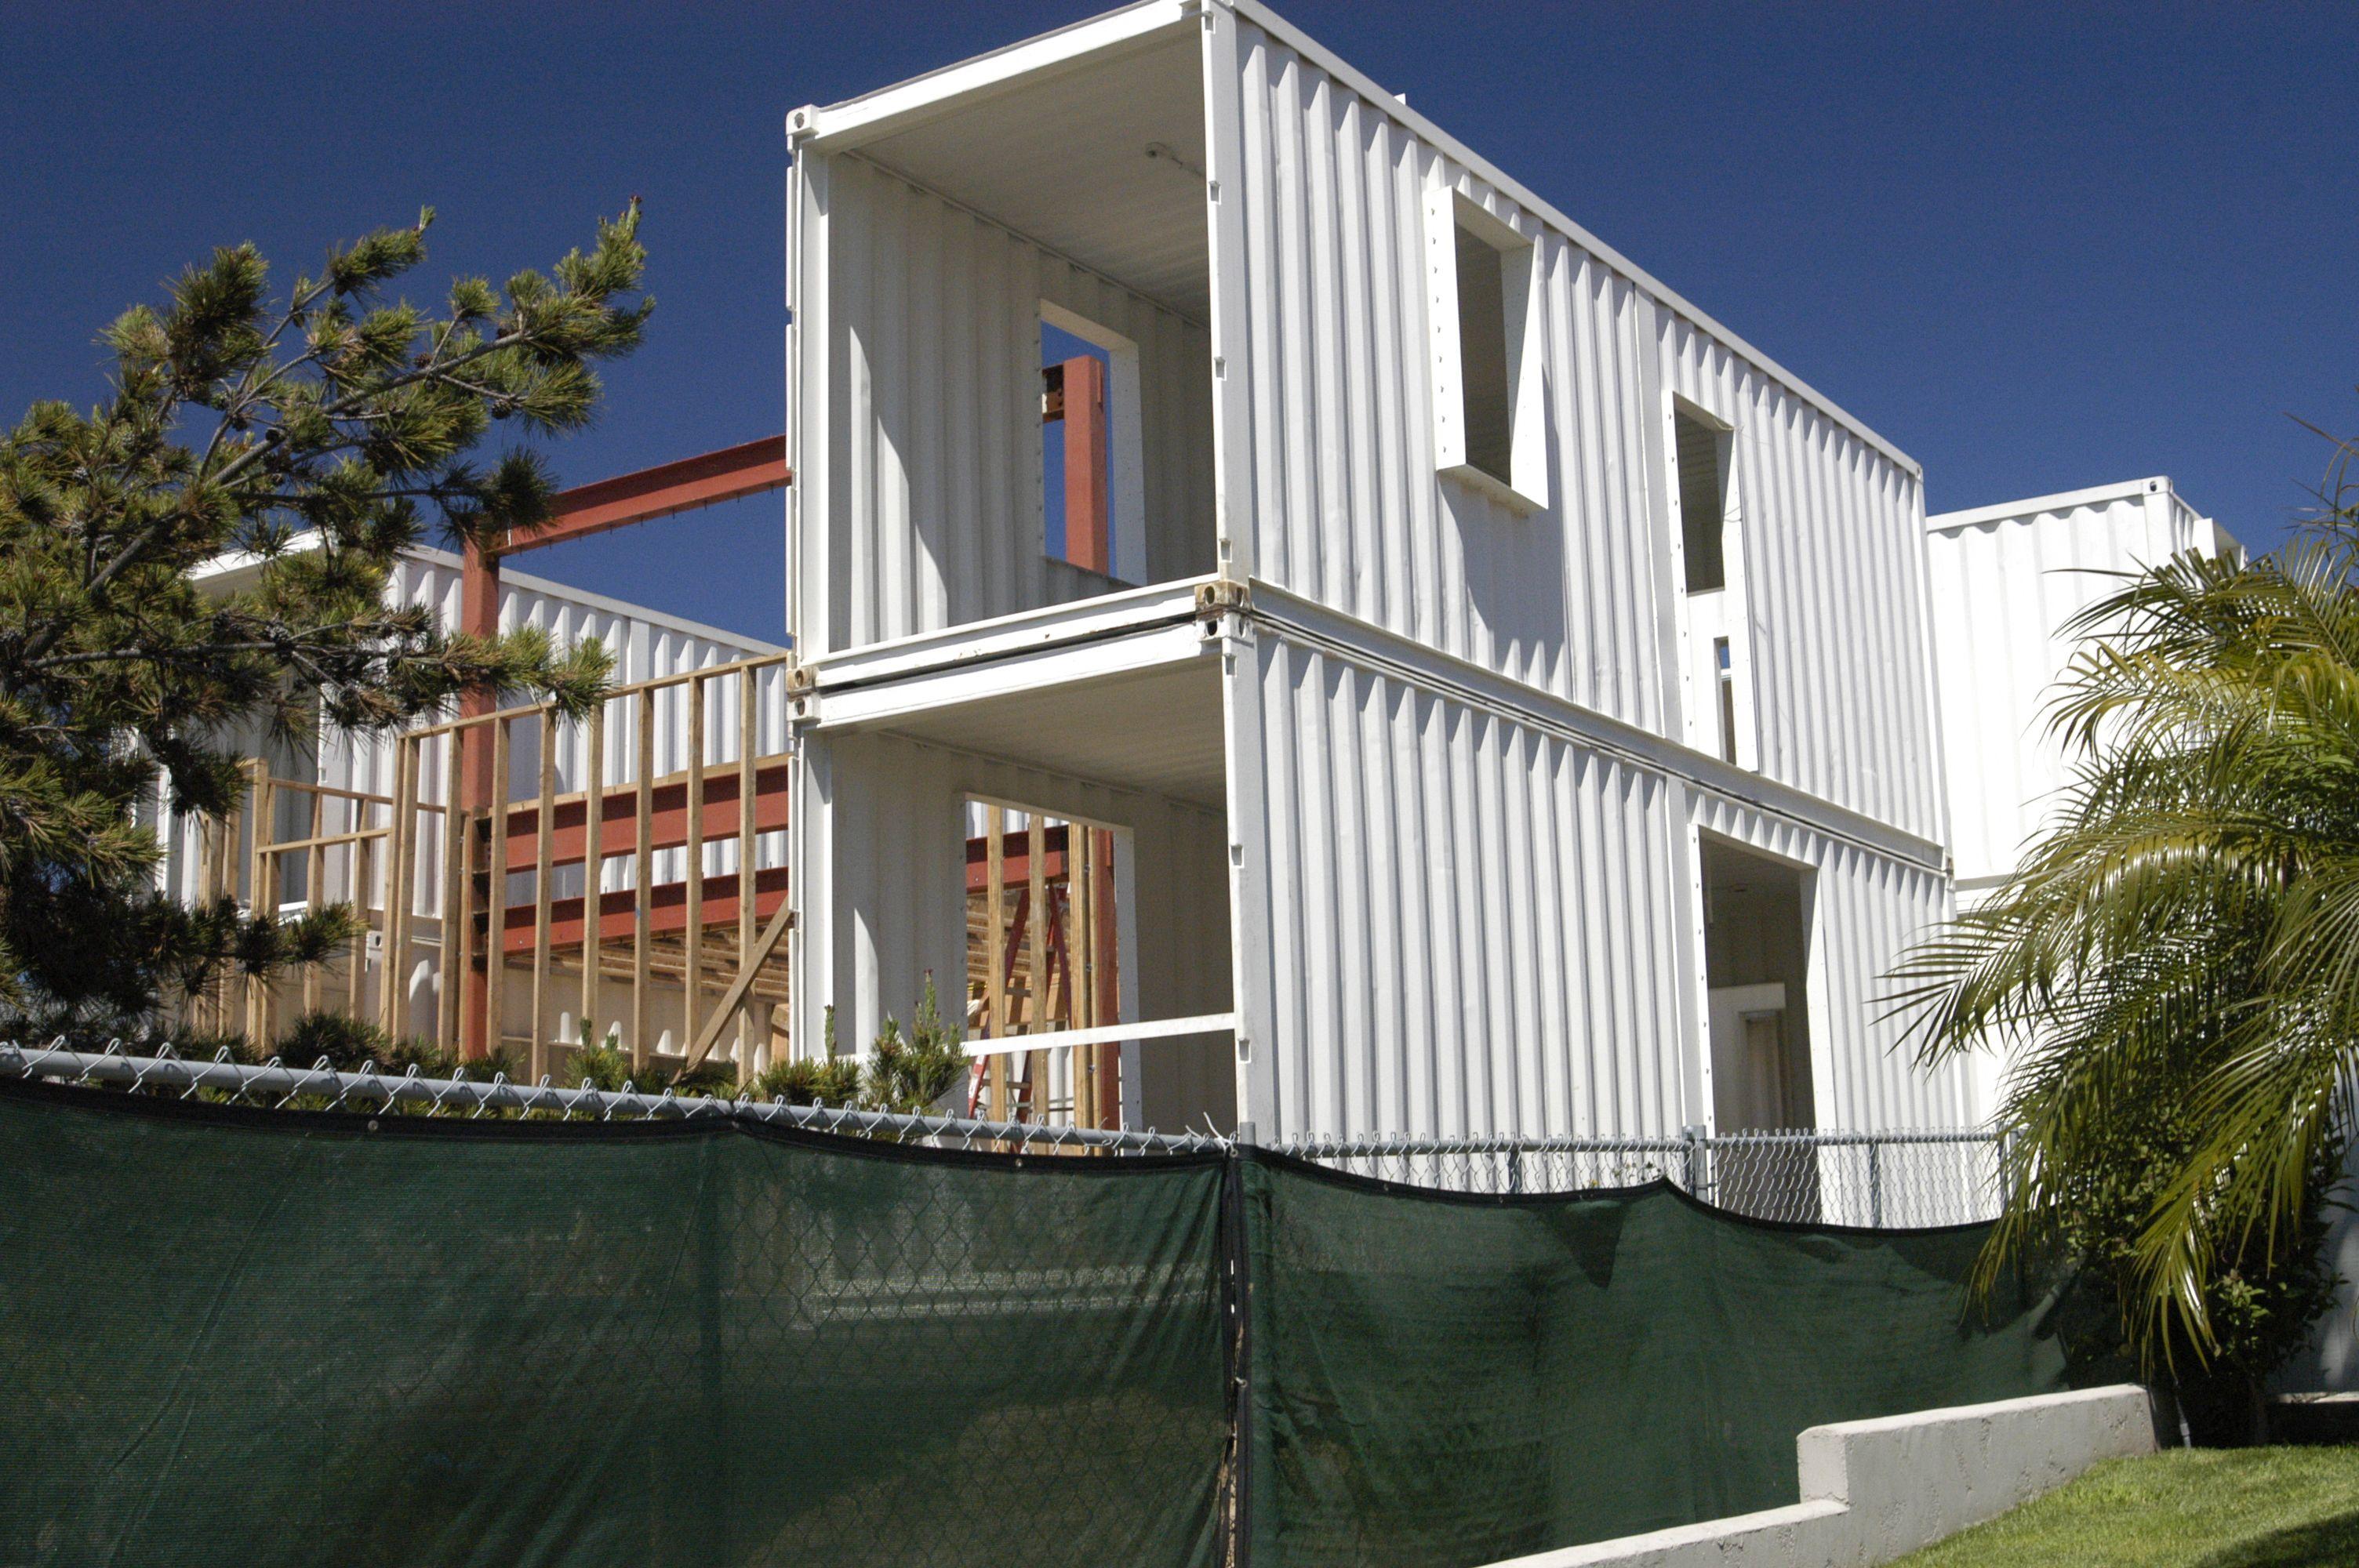 Shipping container music studio joy studio design gallery best - Shipping Container Home Green Homes Pinterest Shipping Containers Shipping Container Homes And Home